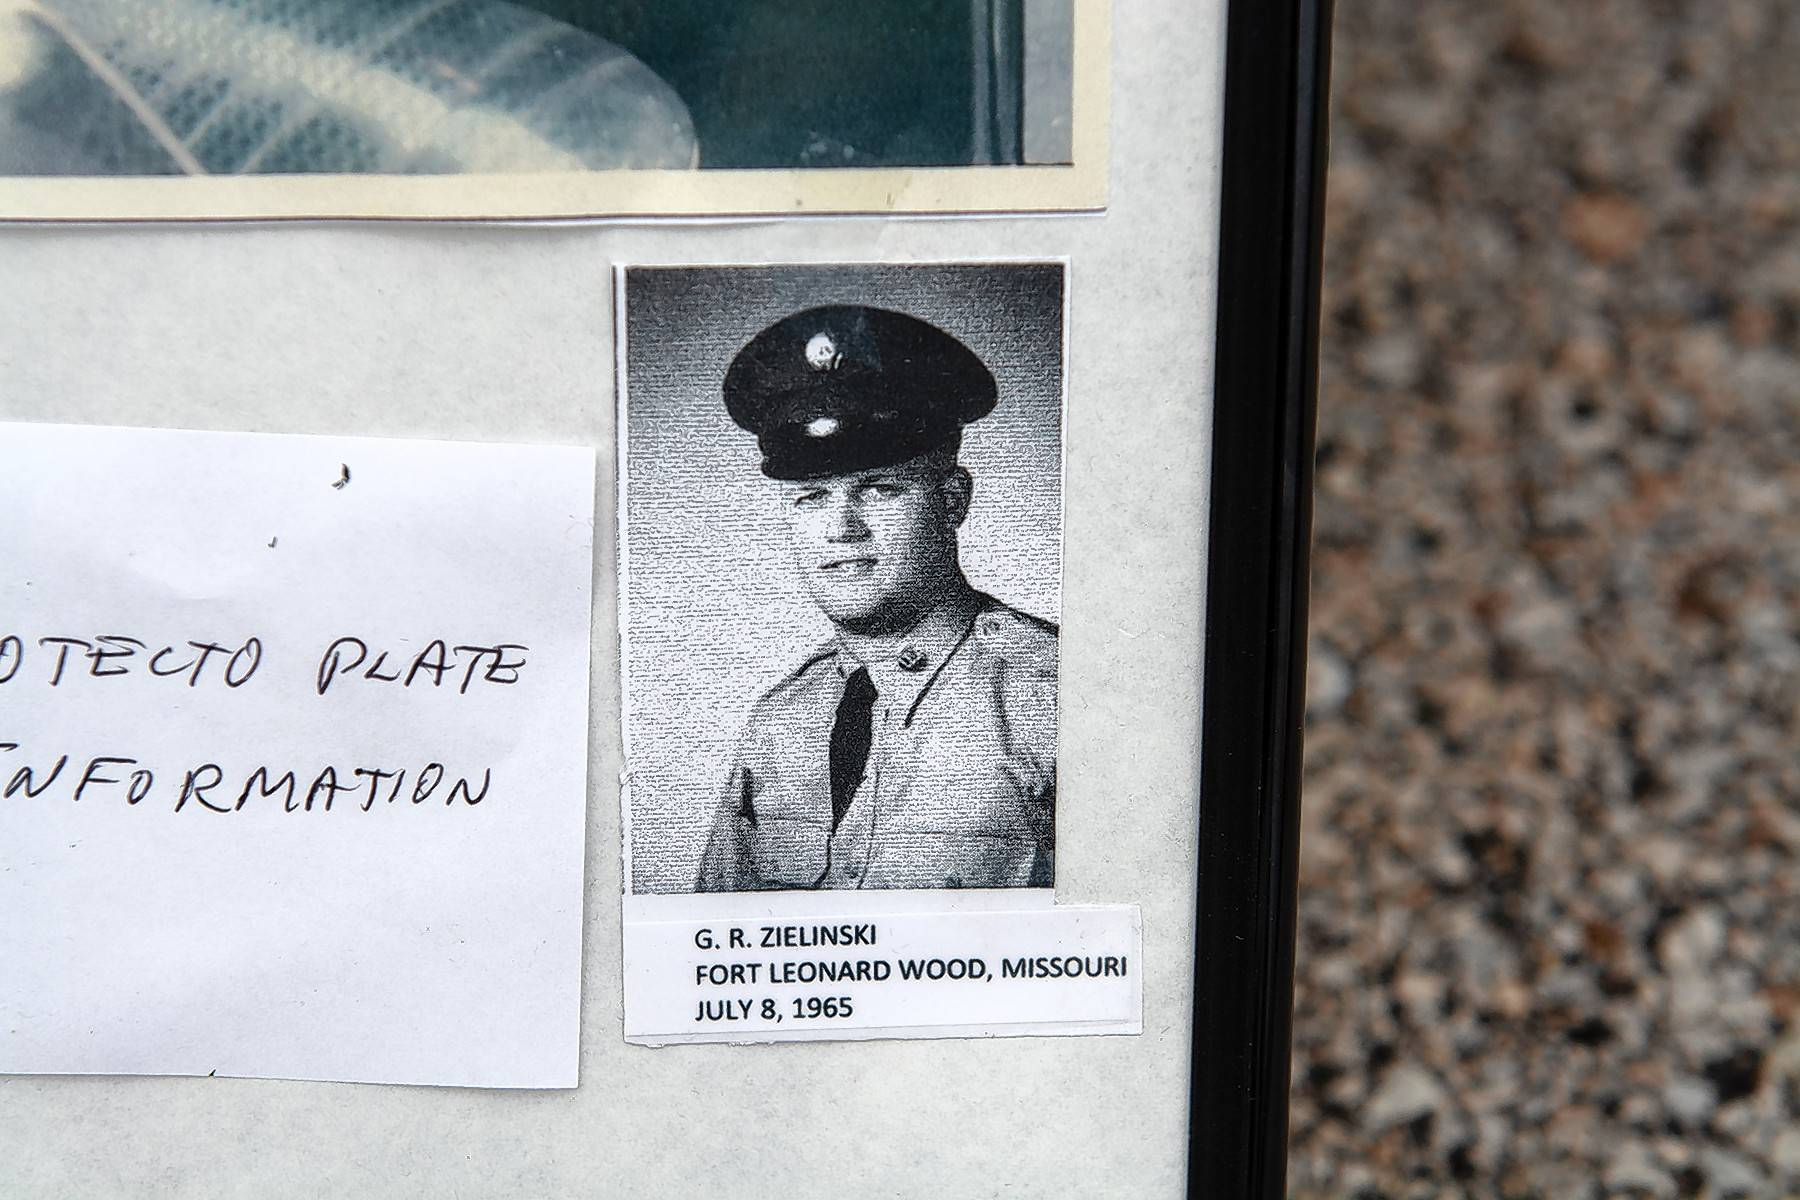 Zielinski keeps a photo of himself from his Army days in a photo album with pictures of the Pontiac from 1965.